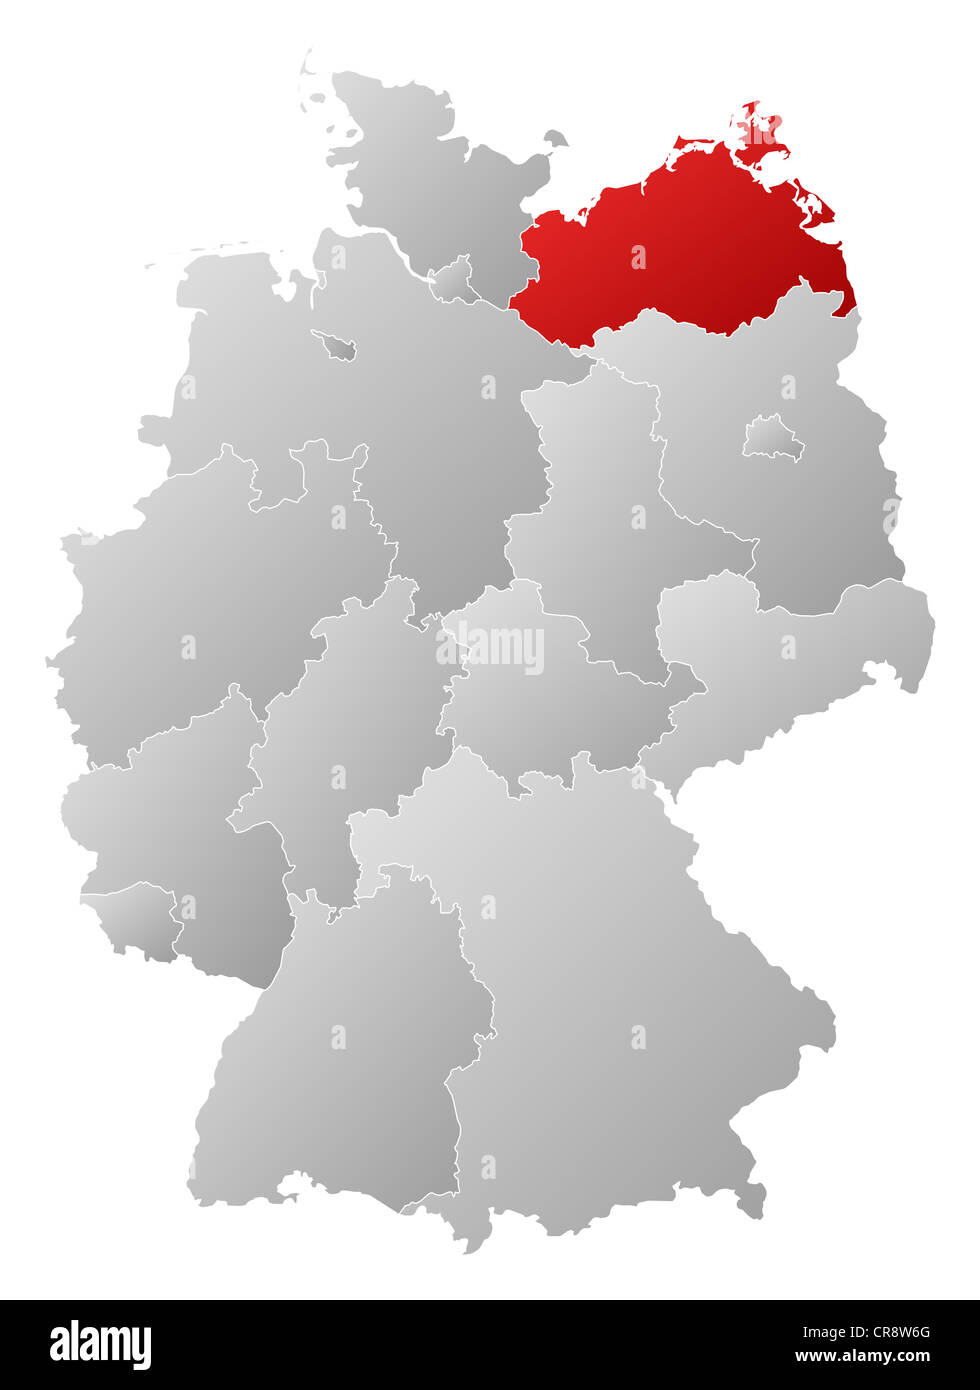 Political map of germany with the several states where stock photo political map of germany with the several states where mecklenburg vorpommern is highlighted gumiabroncs Image collections